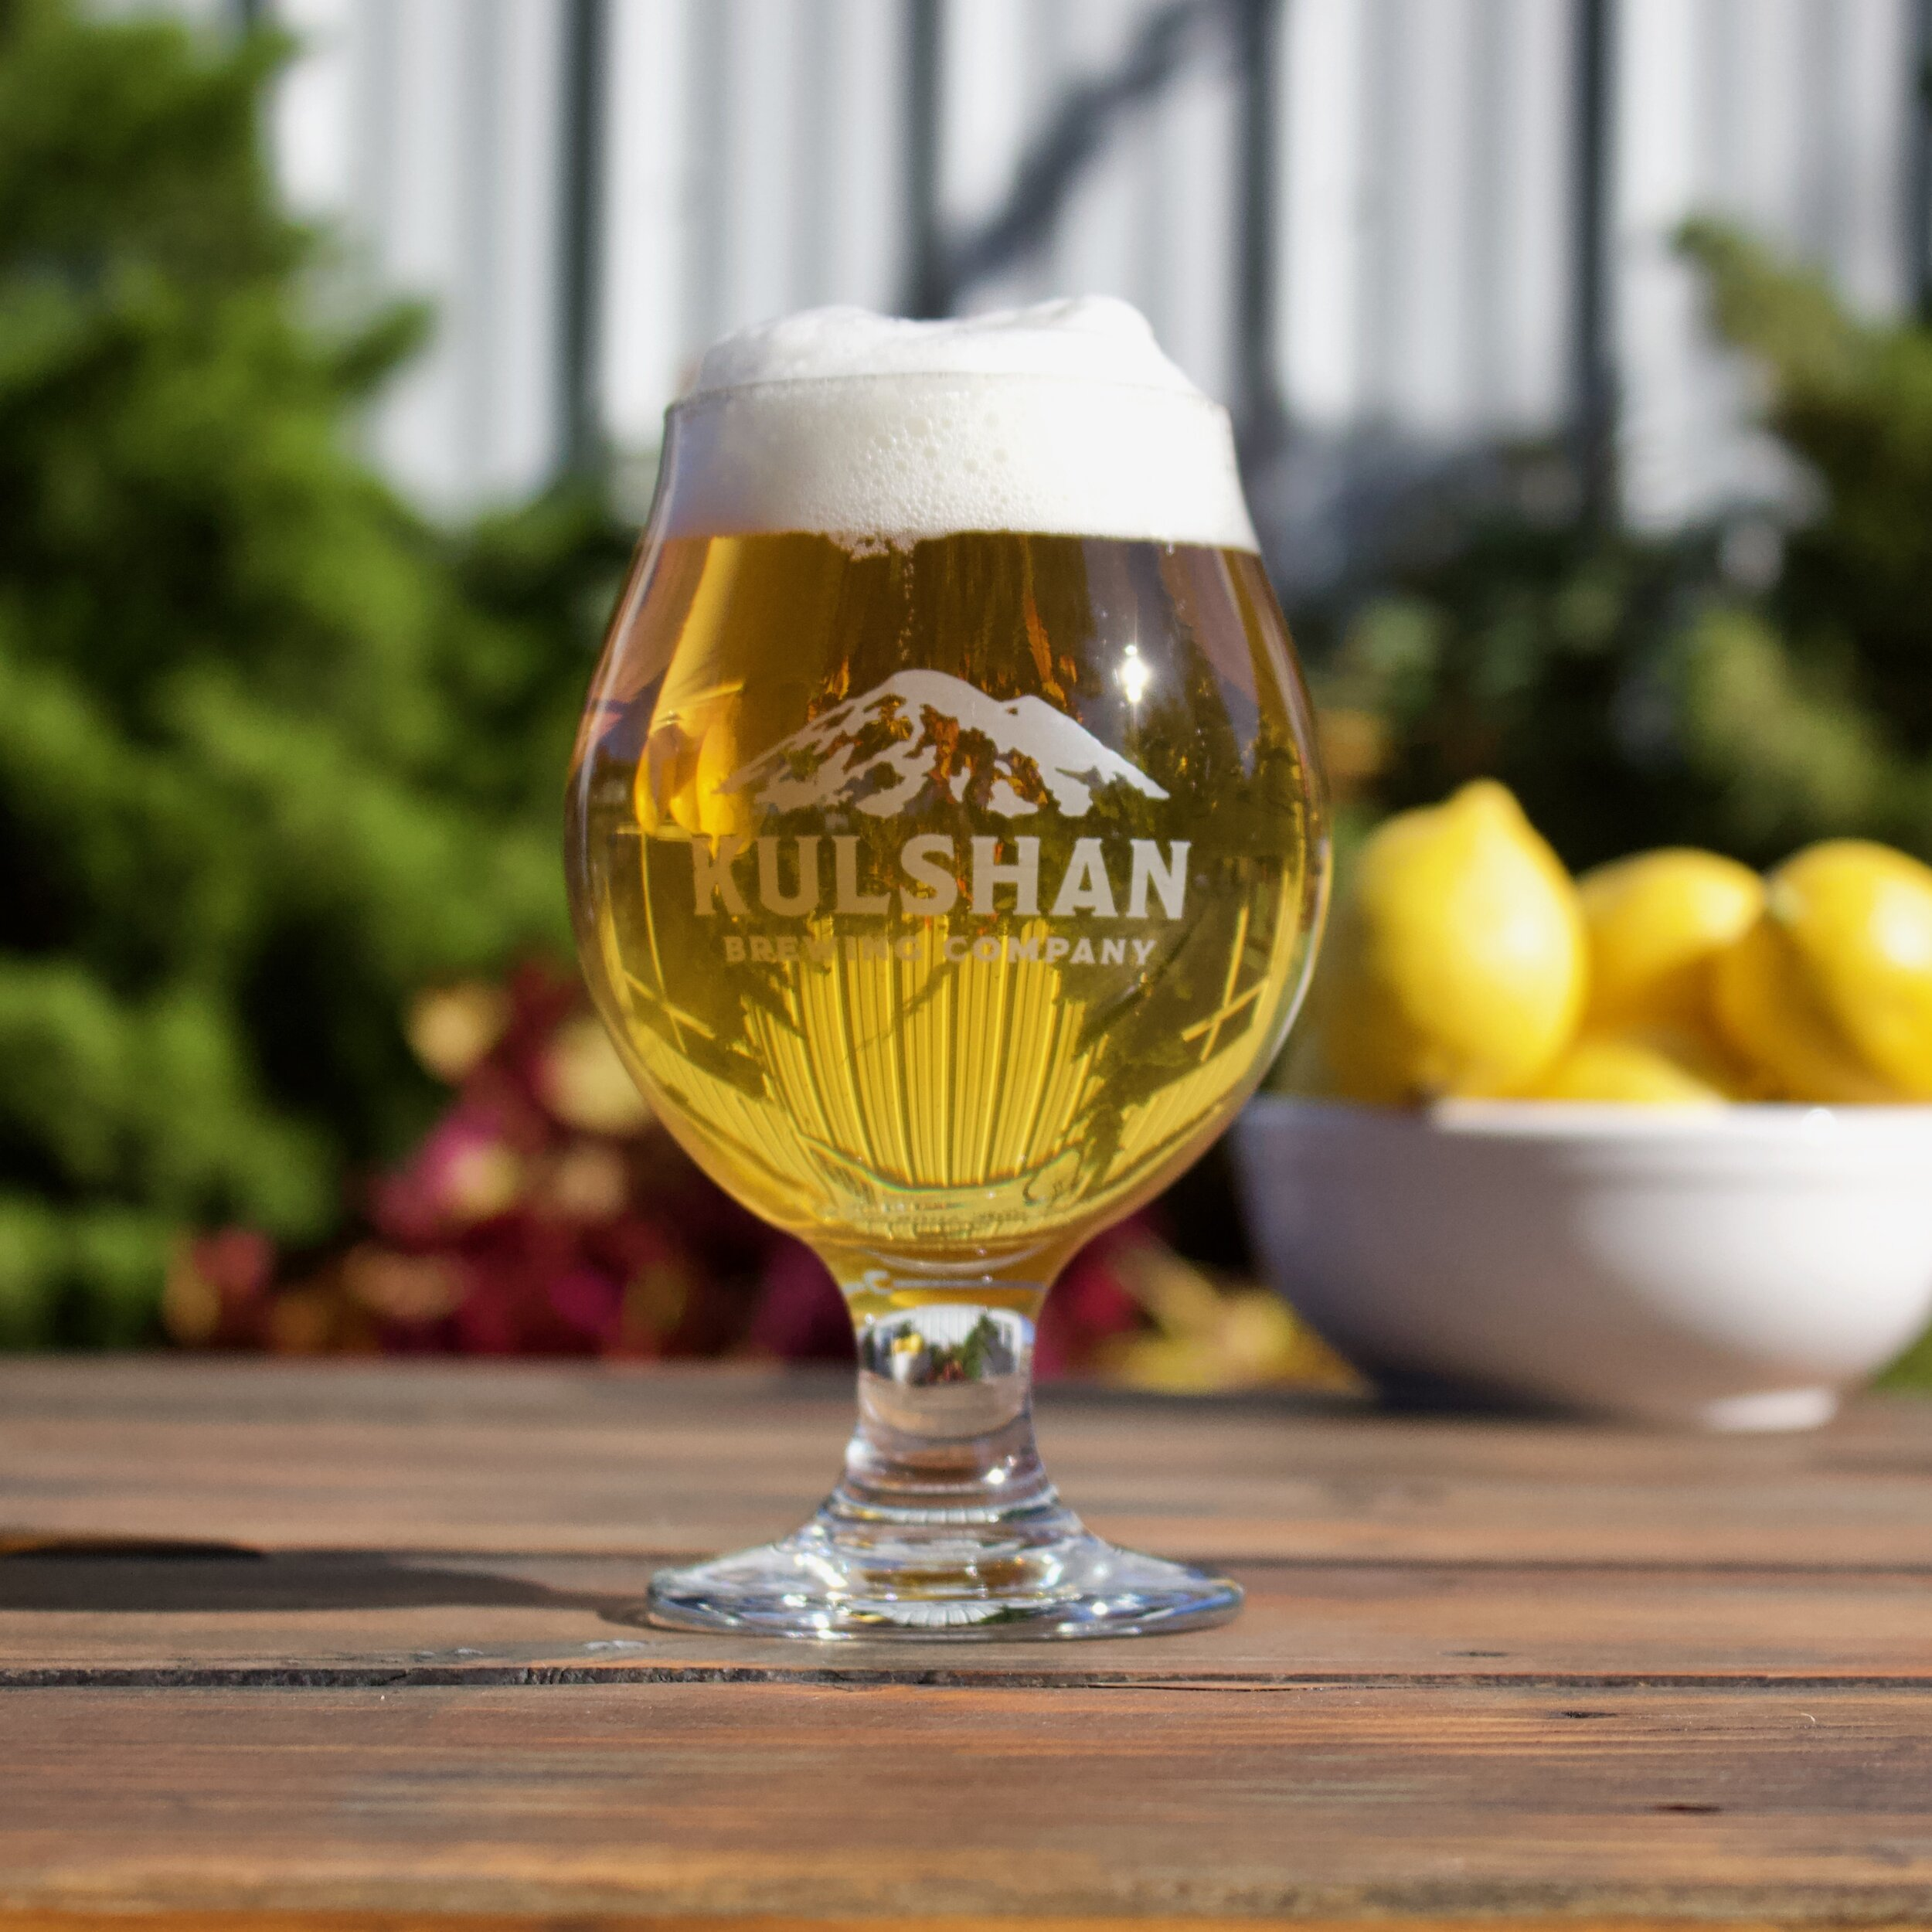 Lemondrop Sunshine Belgian Saison from Kulshan Brewing